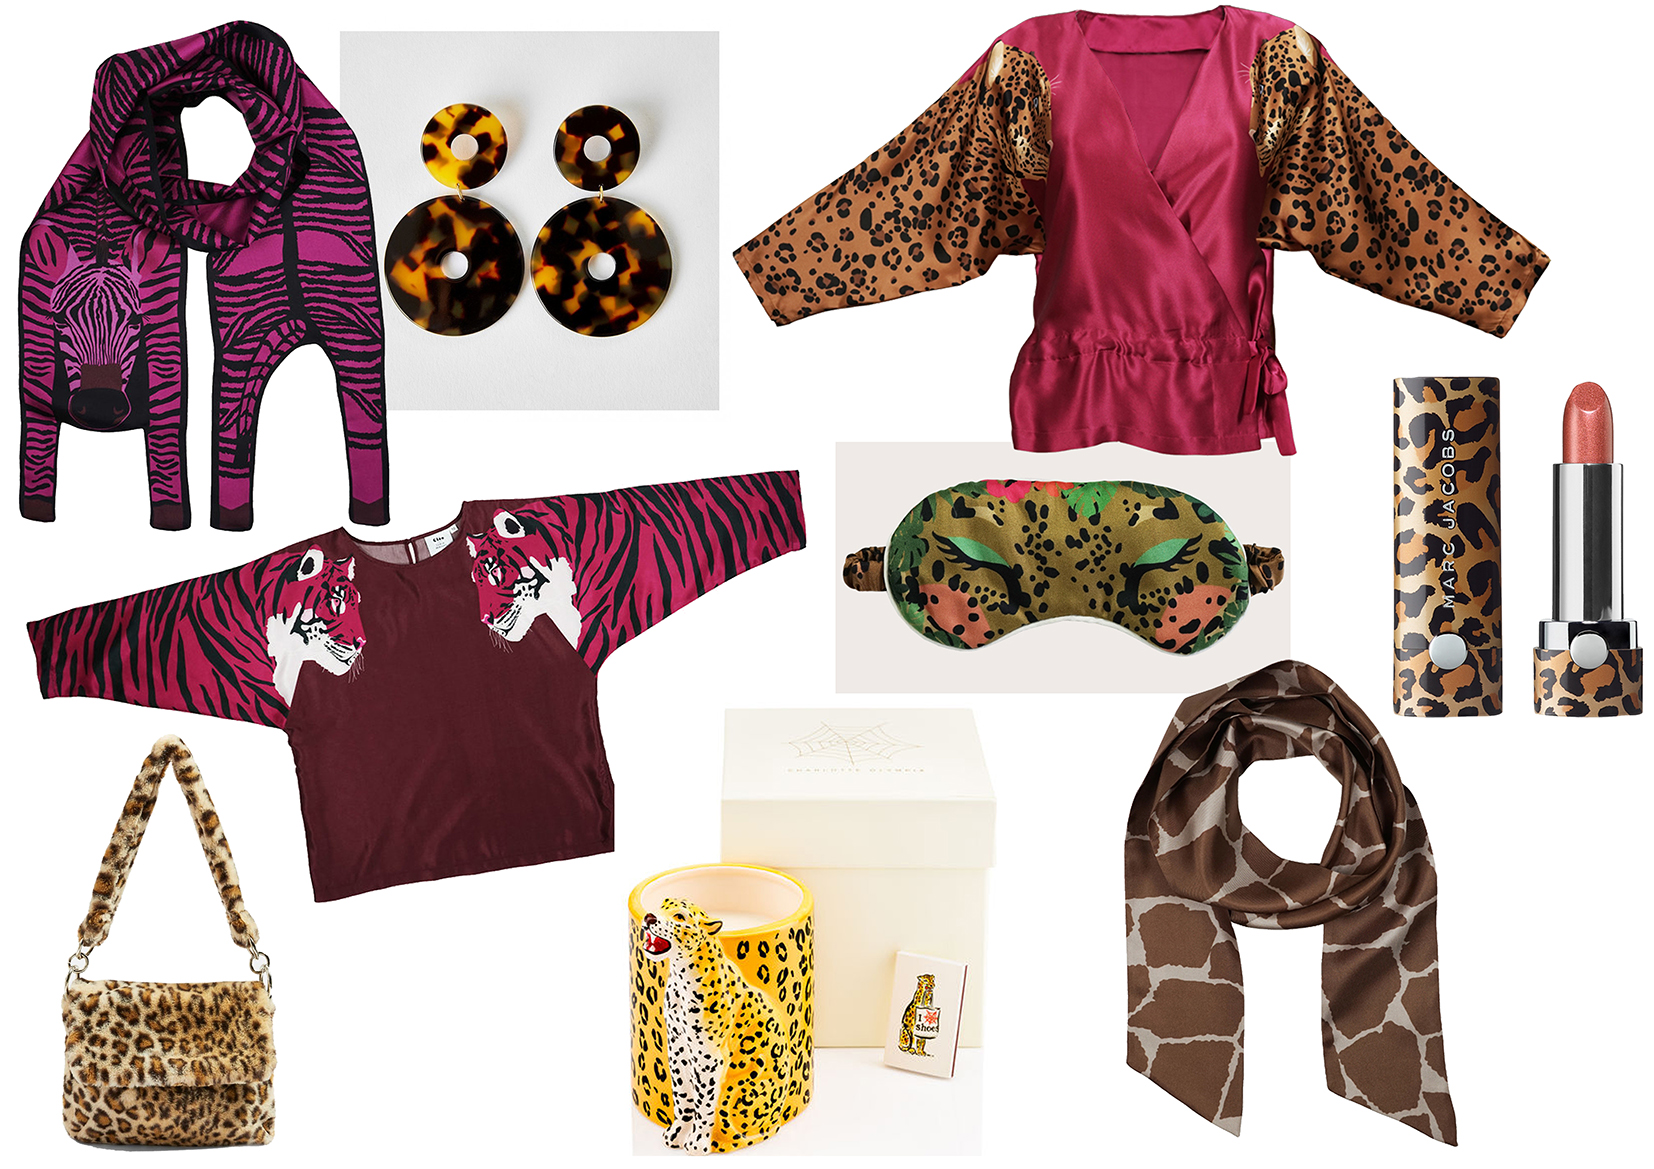 Clockwise :  Zebra Silk Scarf by Cléo Ferin Mercury , T ortoise Shell Earrings by Apres-Ski ,  Leopard Print Top By Cléo Ferin Mercury ,  Lipstick by Marc Jacobs ,  Giraffe print Cravat Scarf by Cléo Ferin Mercury,   Jaguar Eye Mask by Cléo Ferin Mercury ,  Candle by Charlotte Olympia ,  Tiger Print Top by Cléo Ferin Mercury ,  Leopard Print Bag by Topshop .